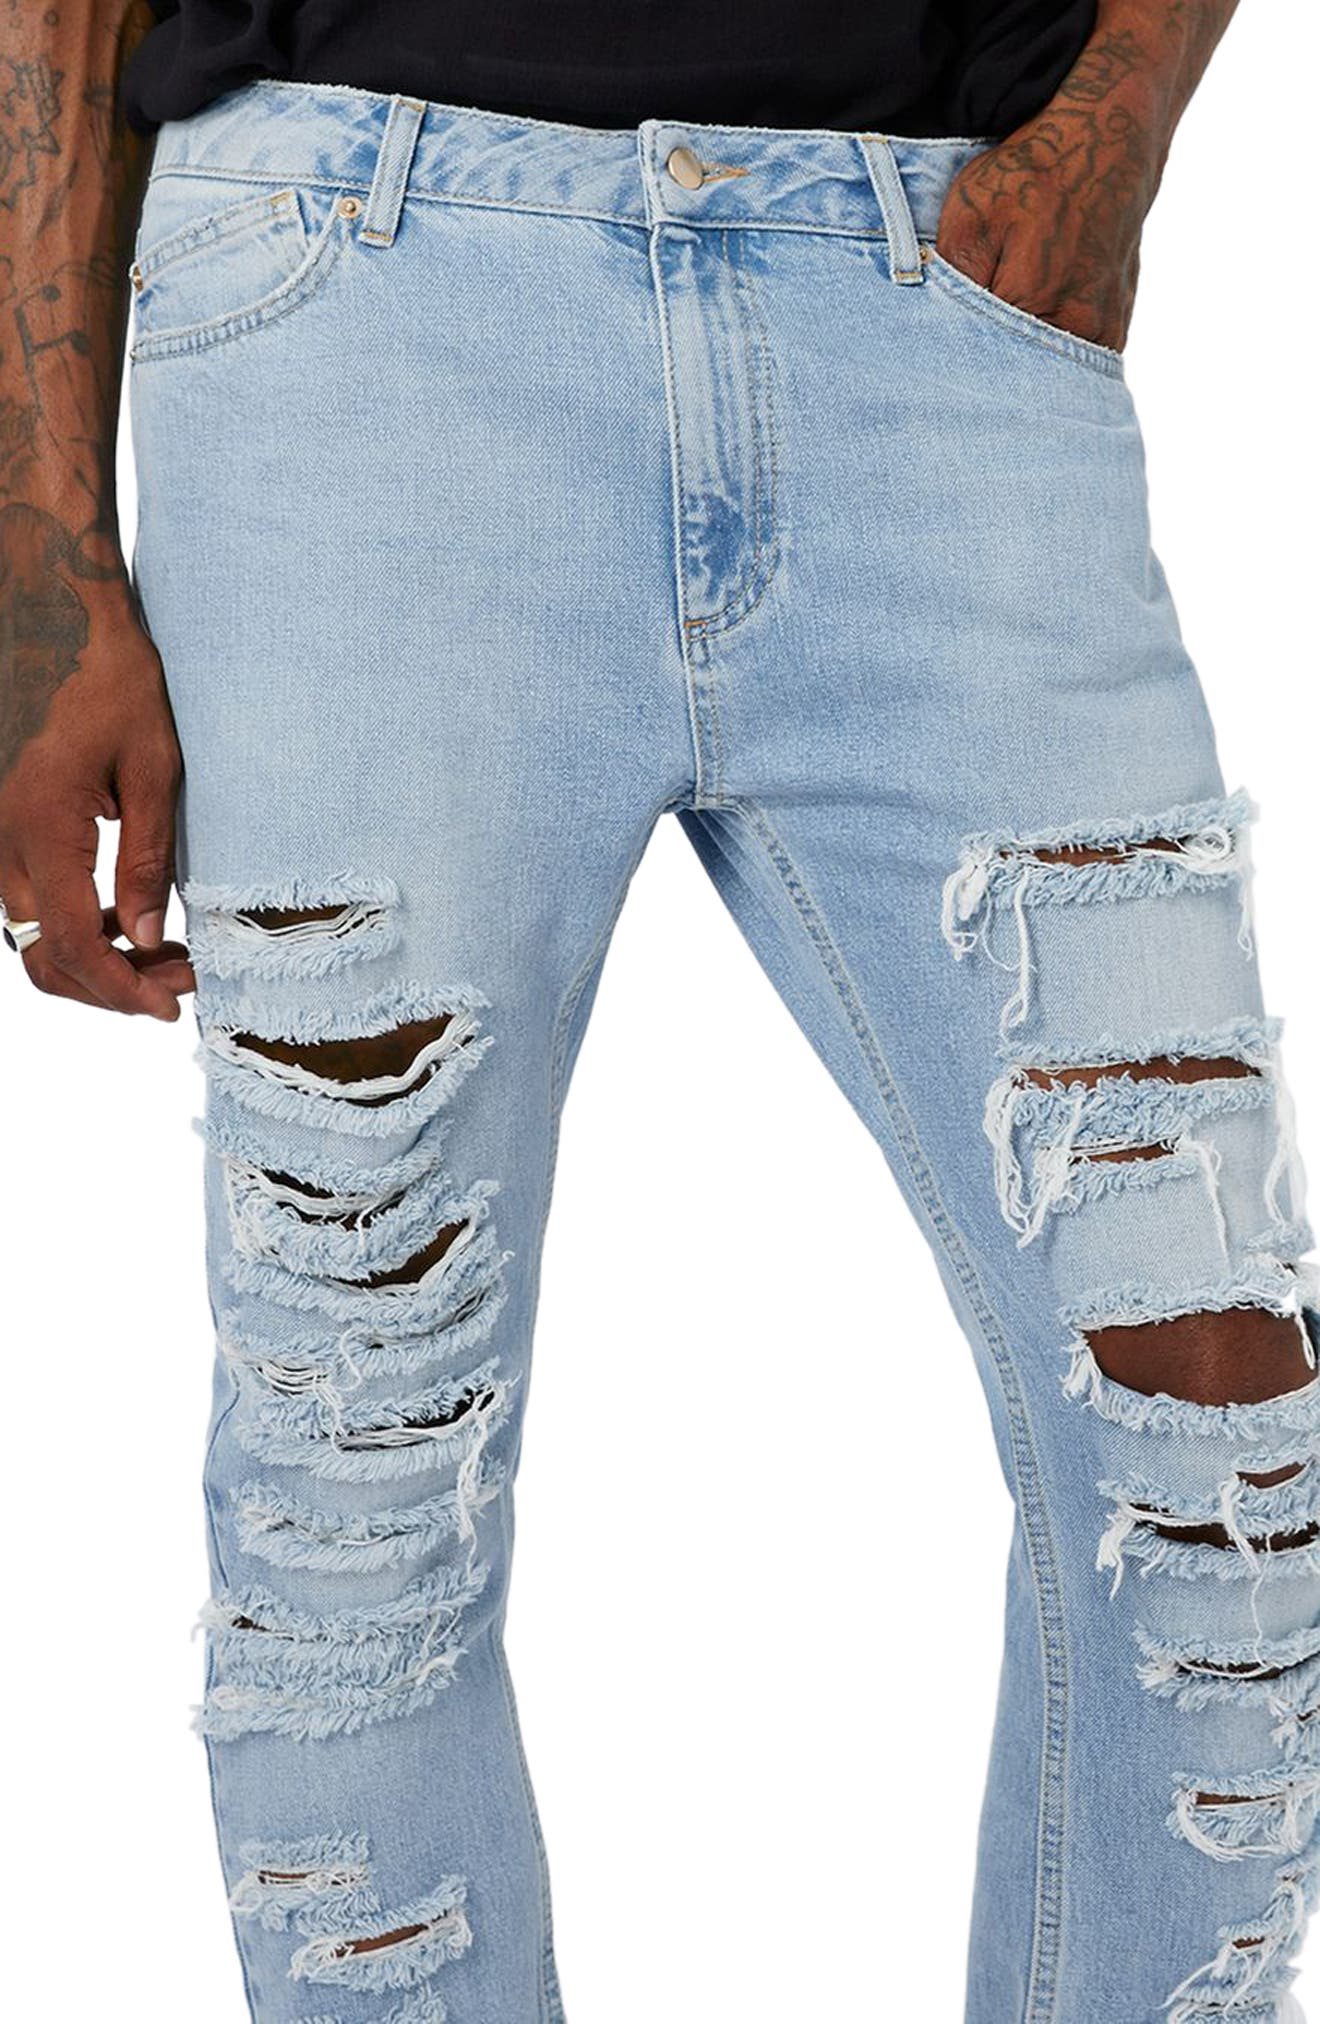 AAA Collection Shredded Skinny Jeans,                             Alternate thumbnail 3, color,                             400